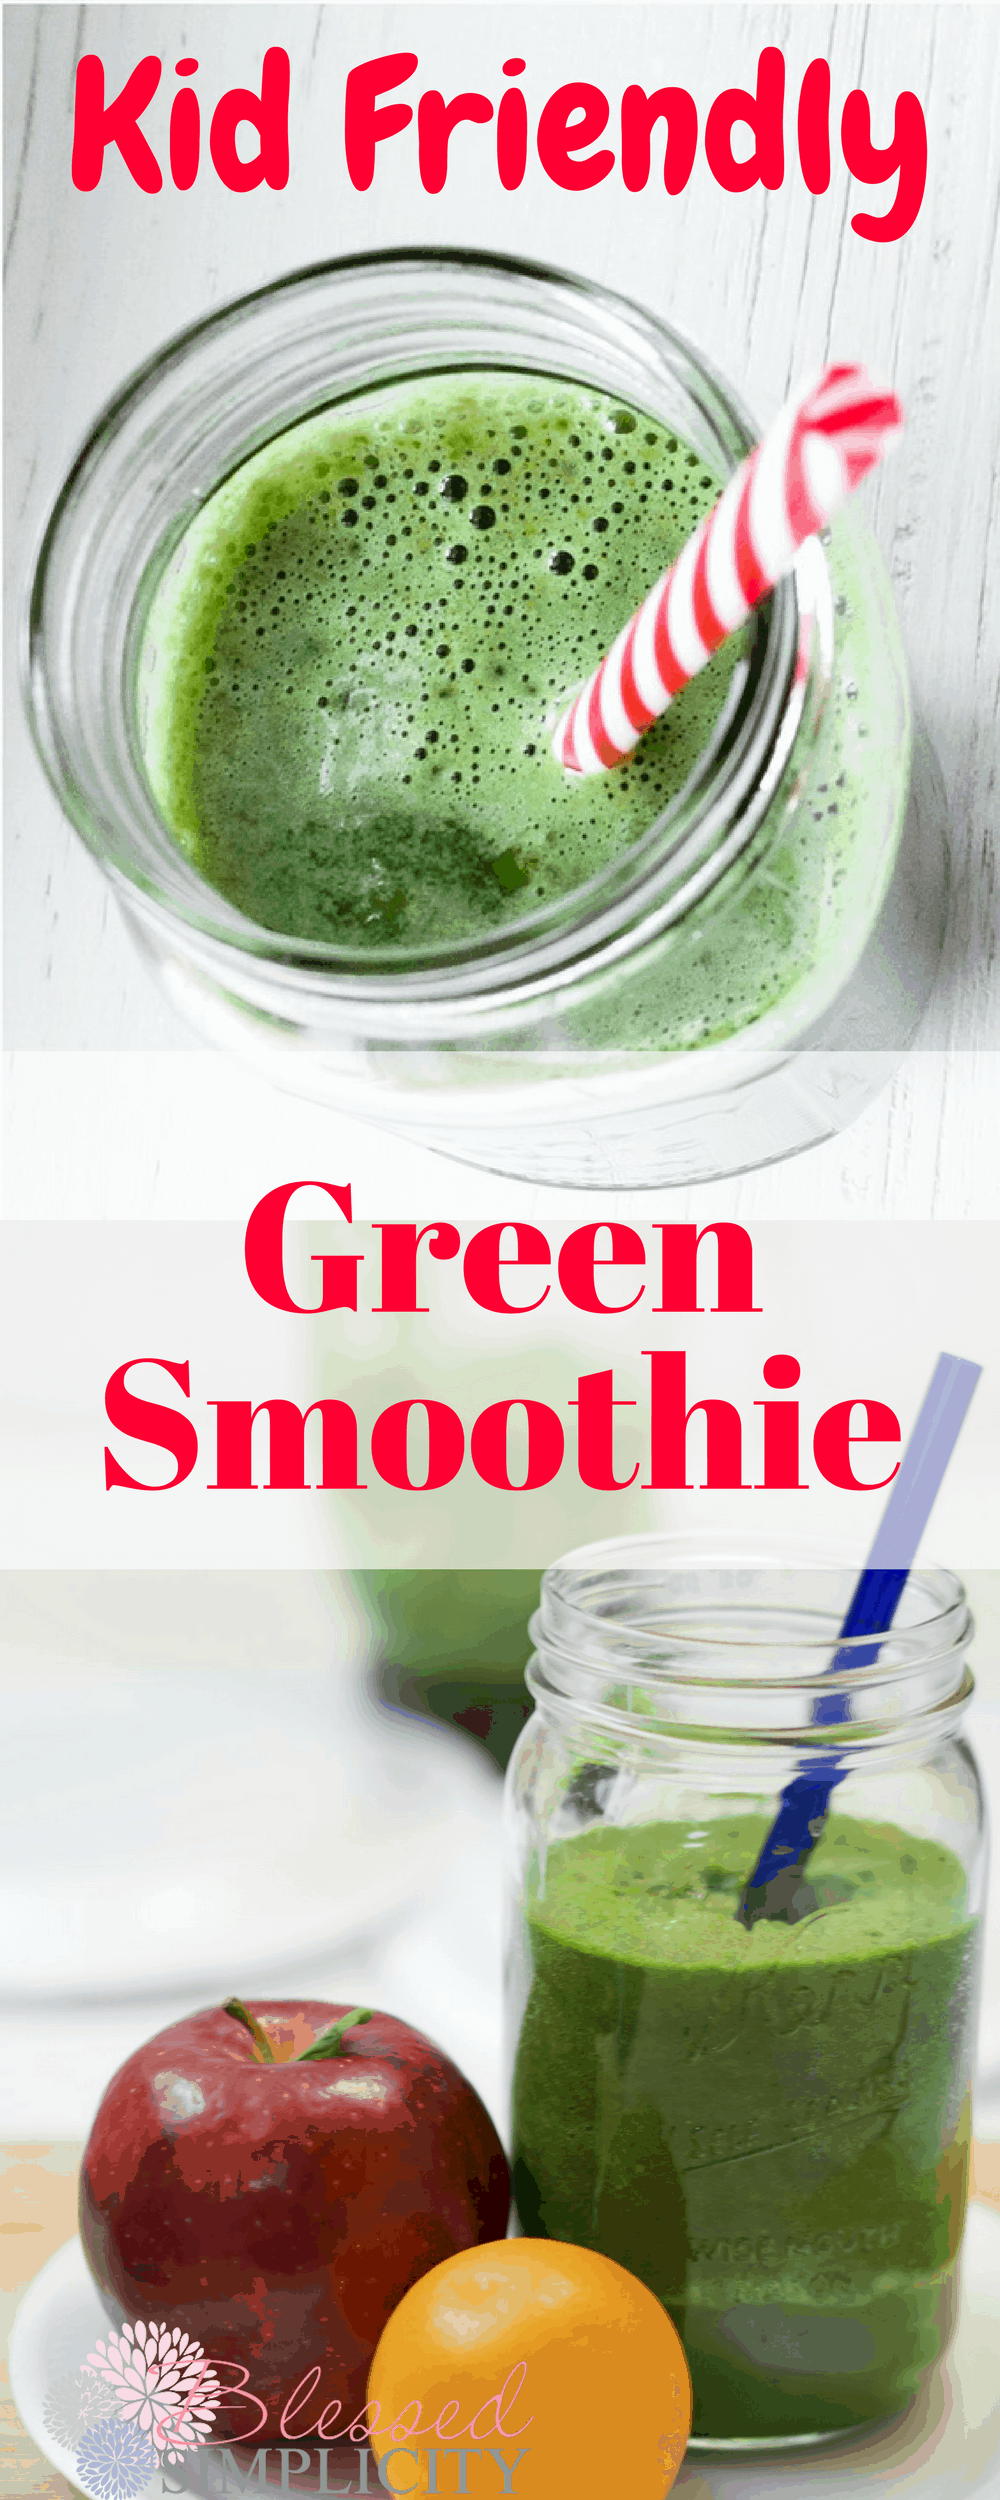 Kid Friendly Green Smoothie Recipe Blessed Simplicity